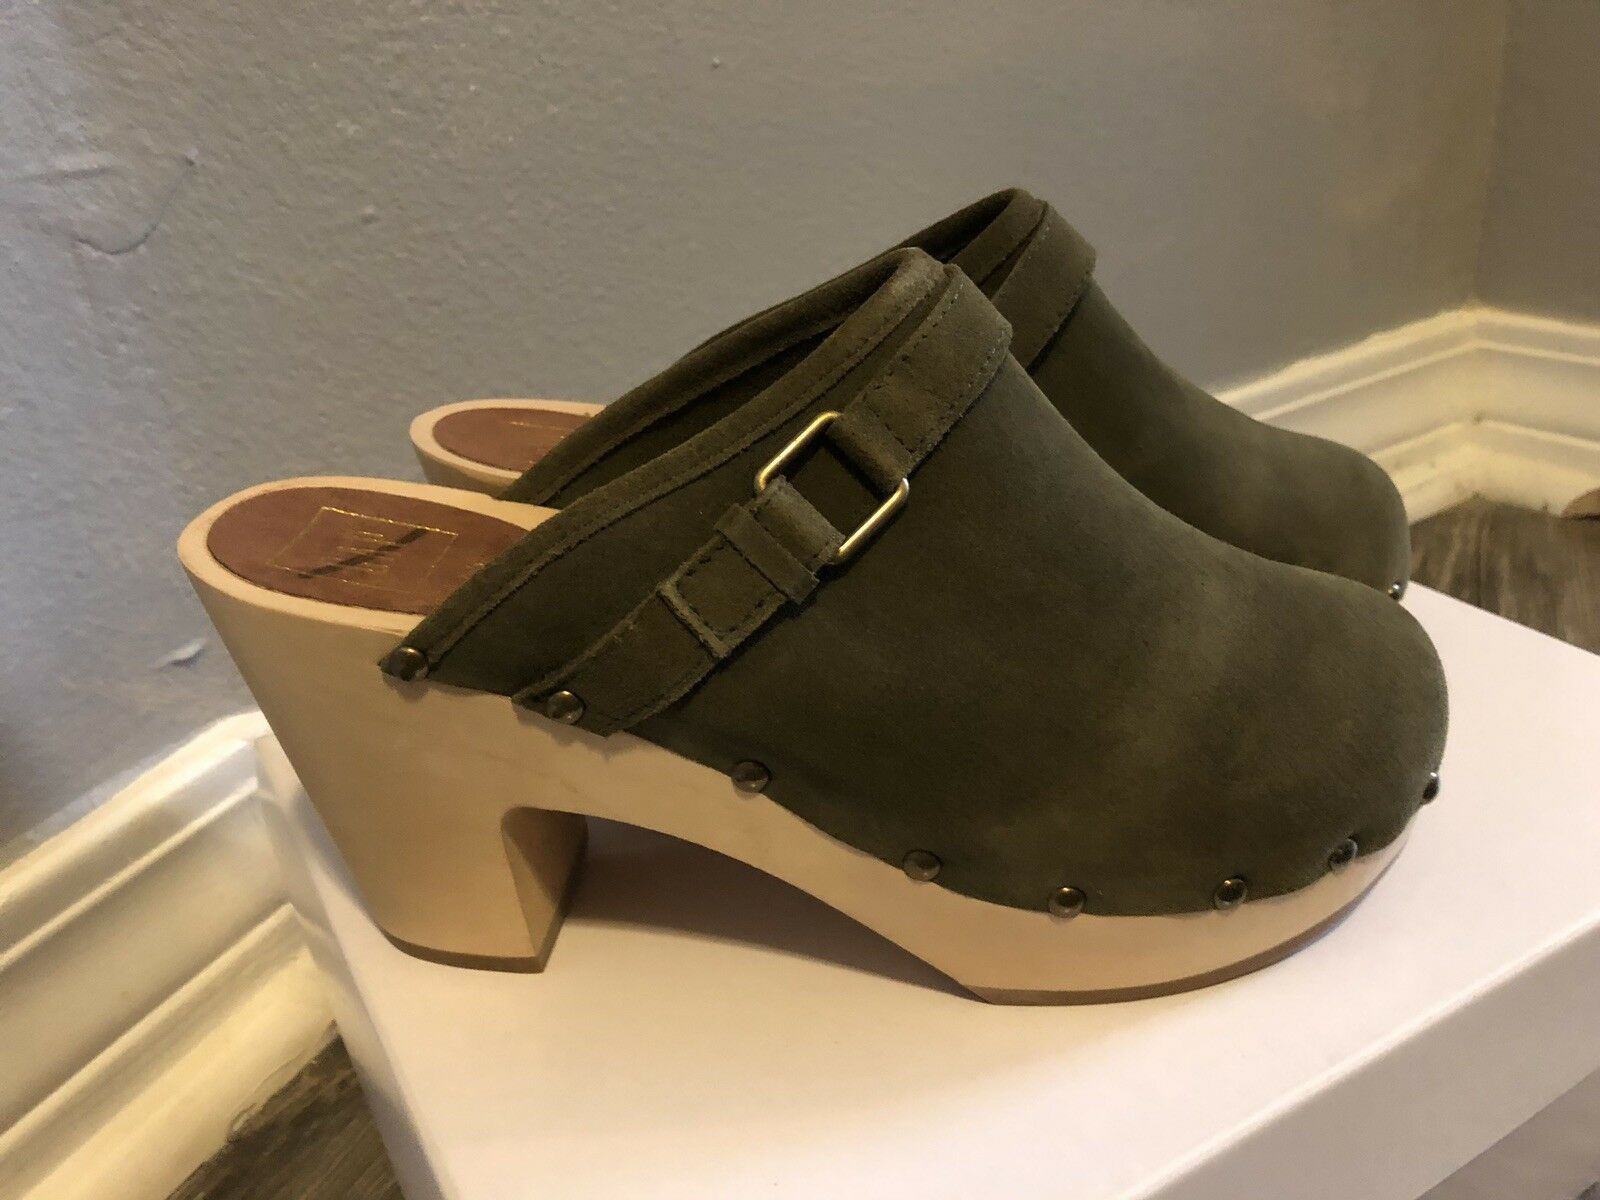 BNWT NEW GAP SUEDE Green Clogs Mules shoes SIZE 7.5